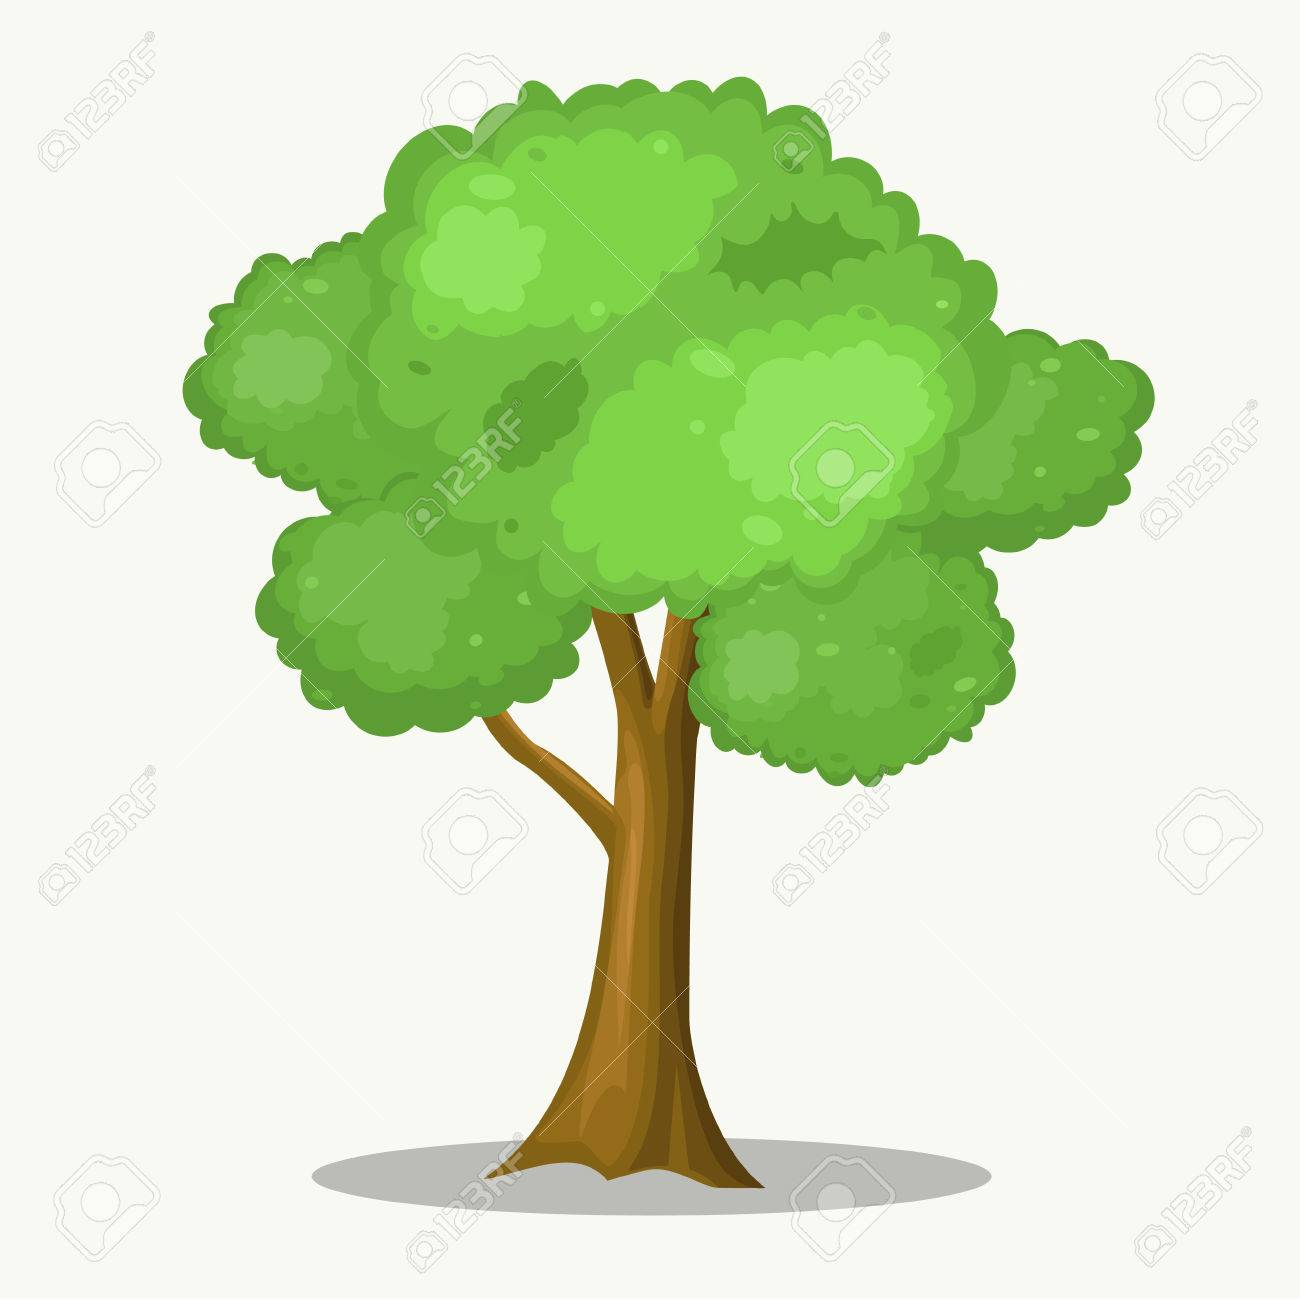 Big Tree Cartoon Illustration For Park And Forest Scene Royalty Free Cliparts Vectors And Stock Illustration Image 66481202 49,000+ vectors, stock photos & psd files. big tree cartoon illustration for park and forest scene